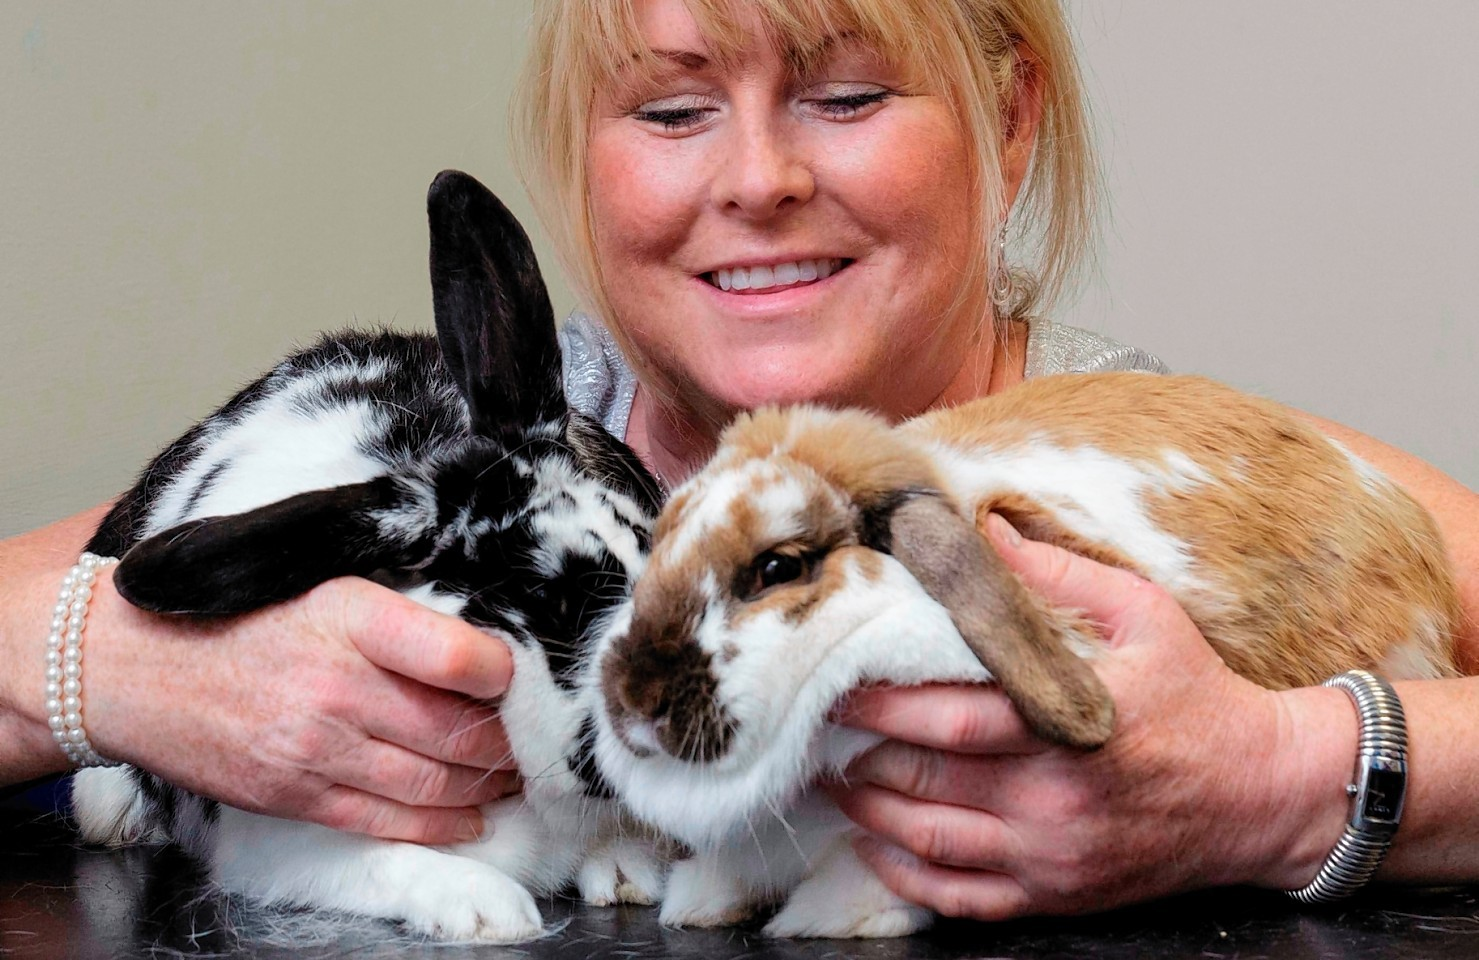 Rabbits Poppy and Joey, owned by Donna Manson,